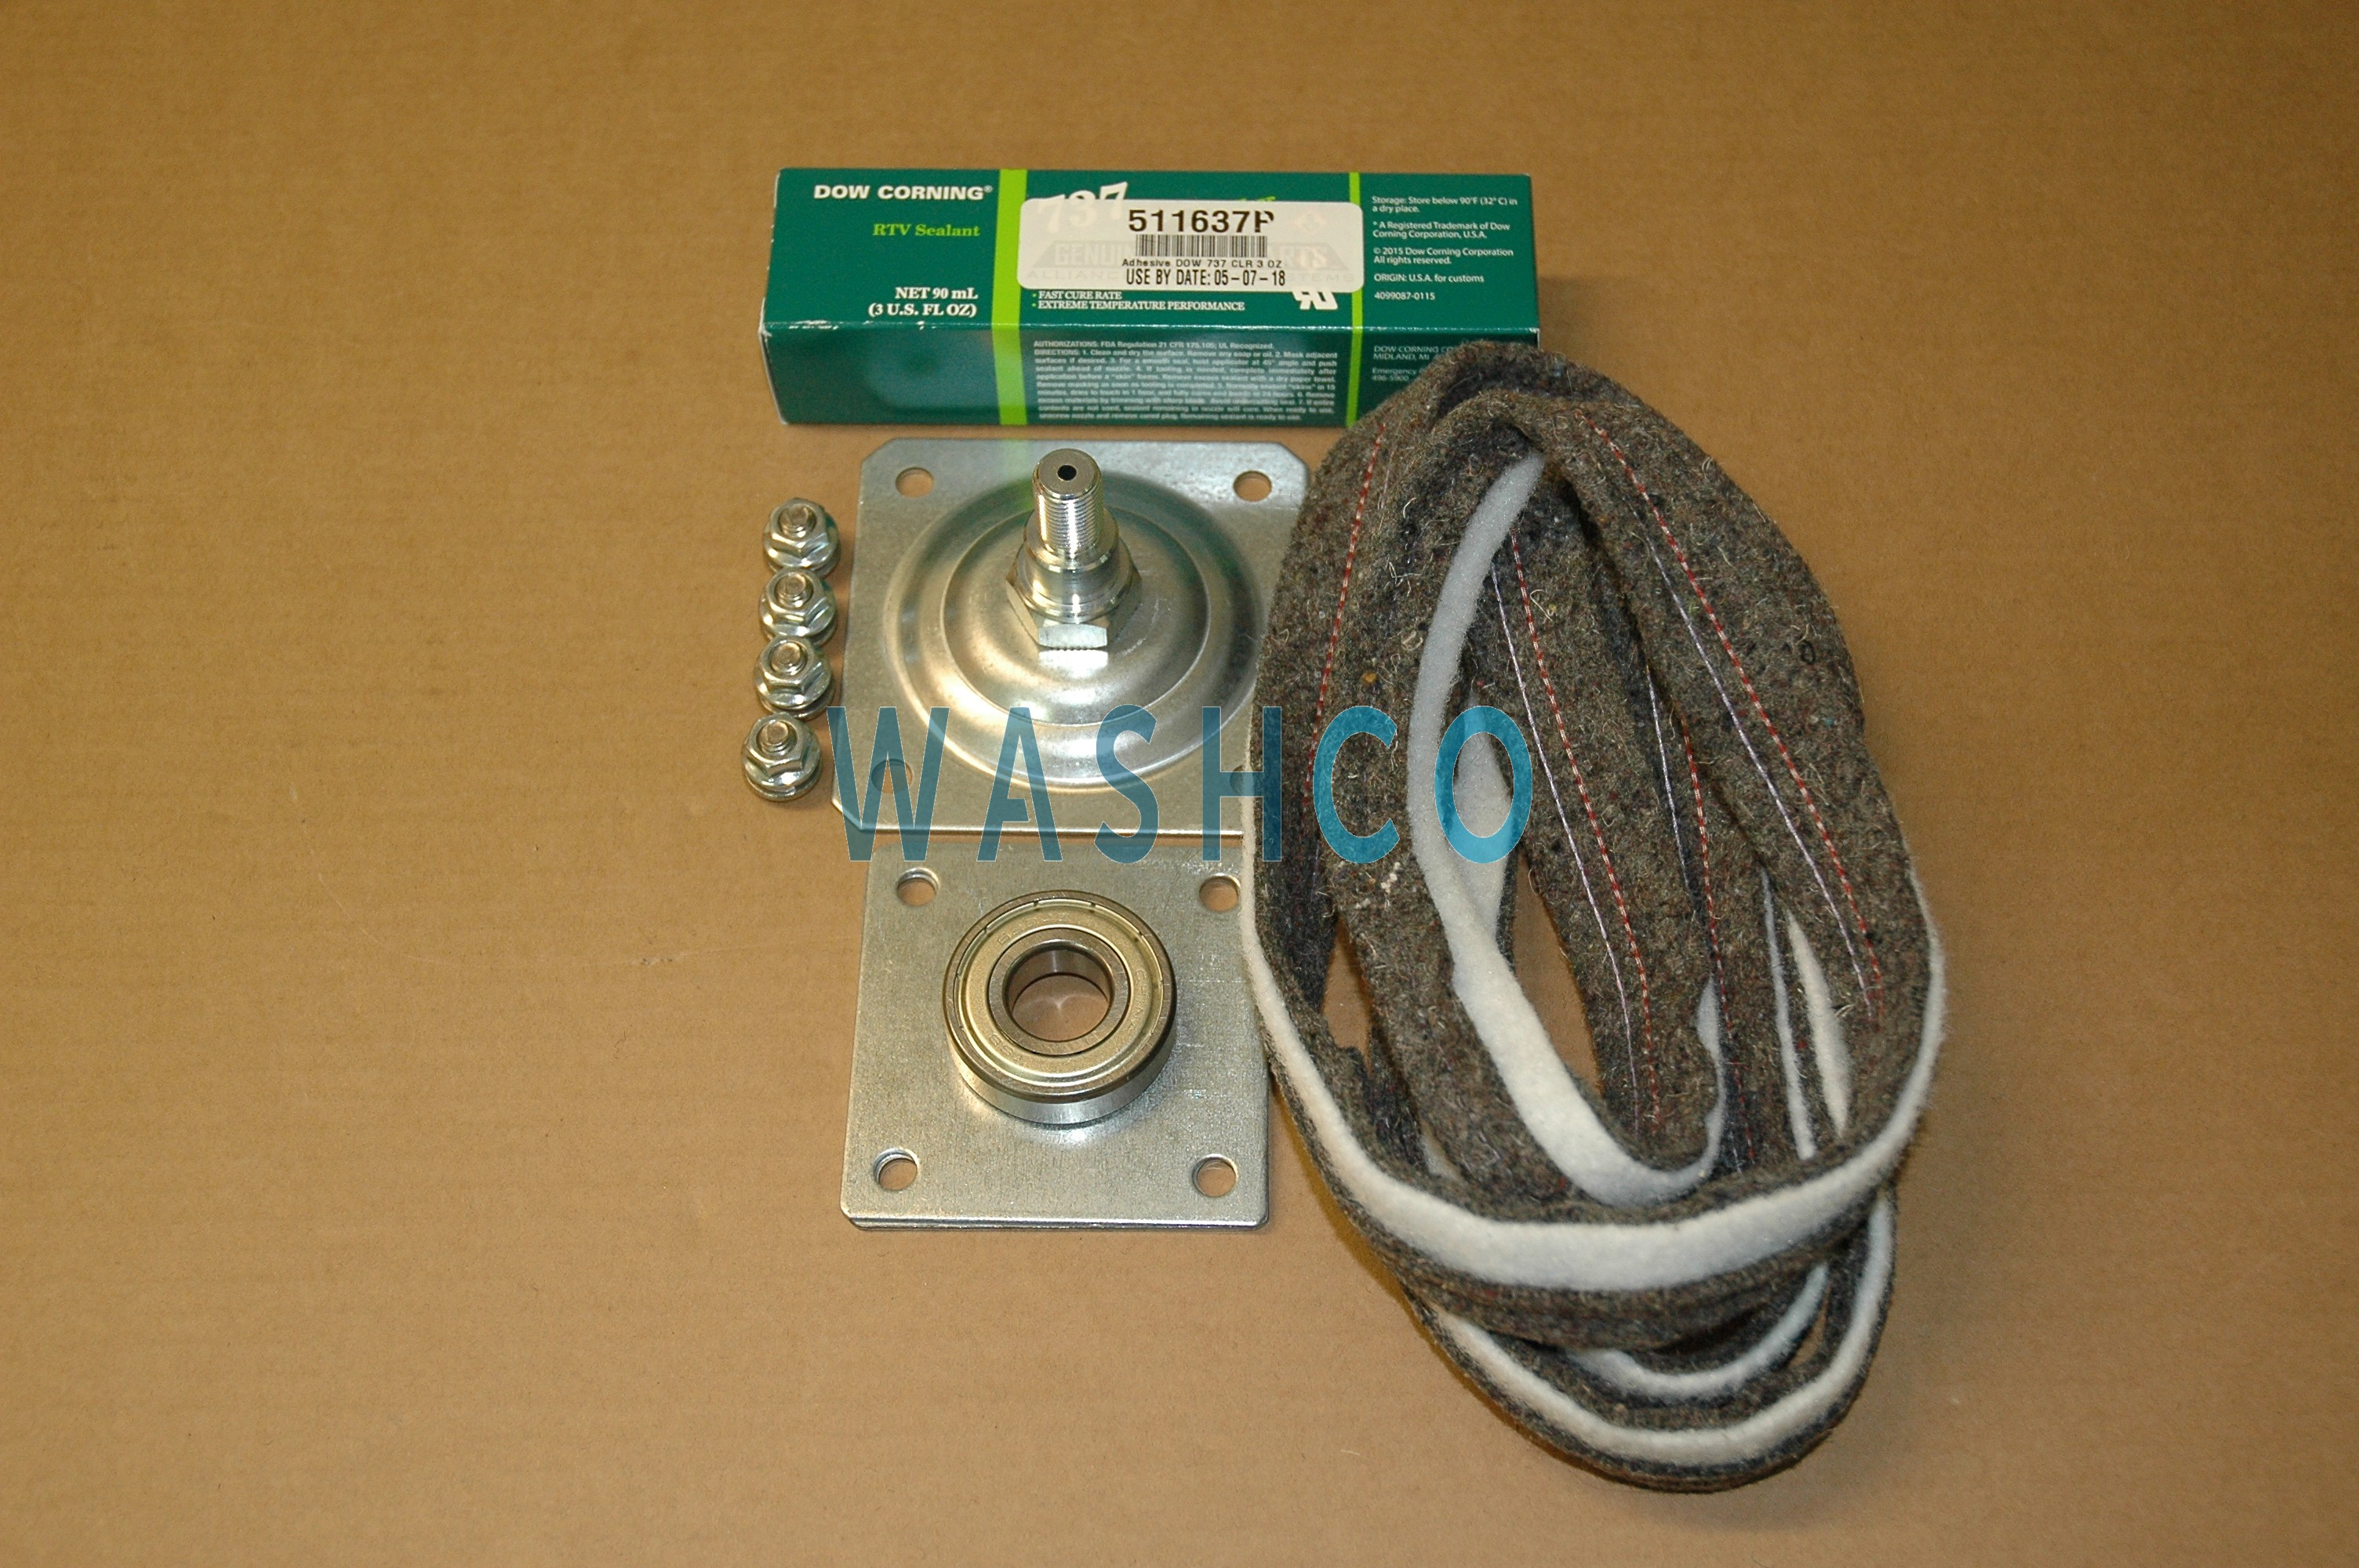 KIT TRUNNION AND SEAL 25 30 image